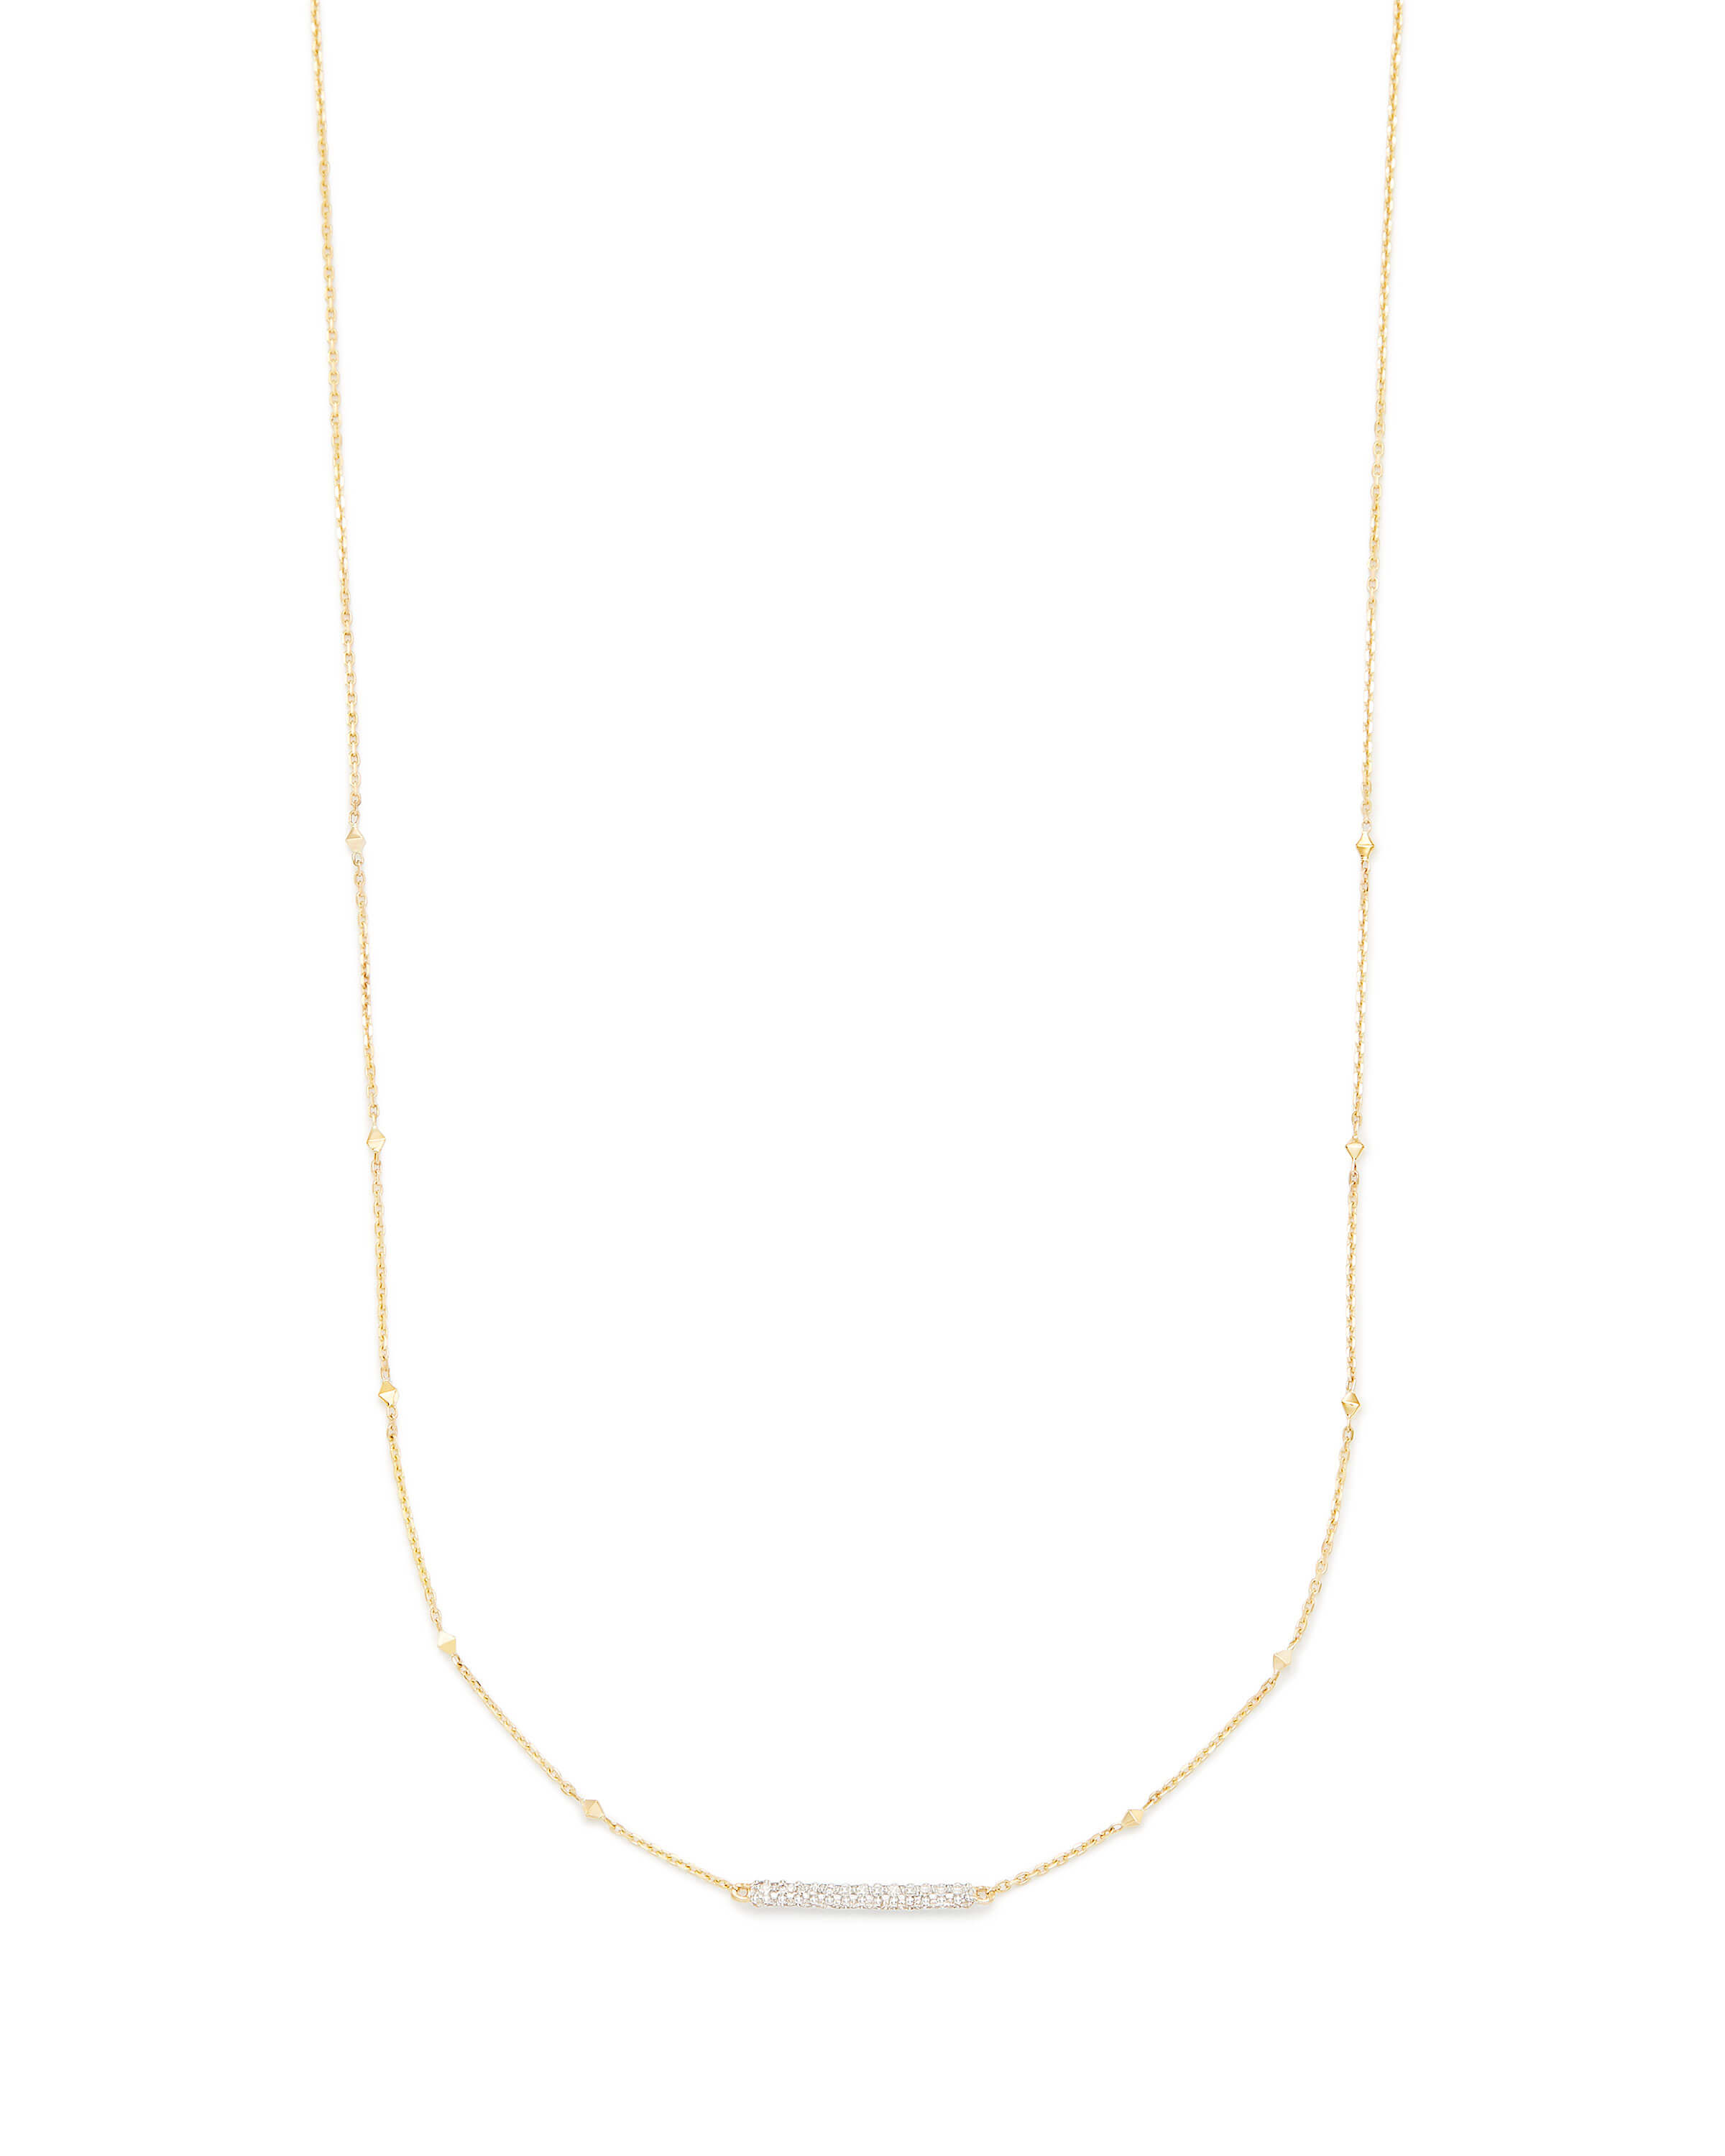 Remington Pendant Necklace in 14k Gold and White Diamonds